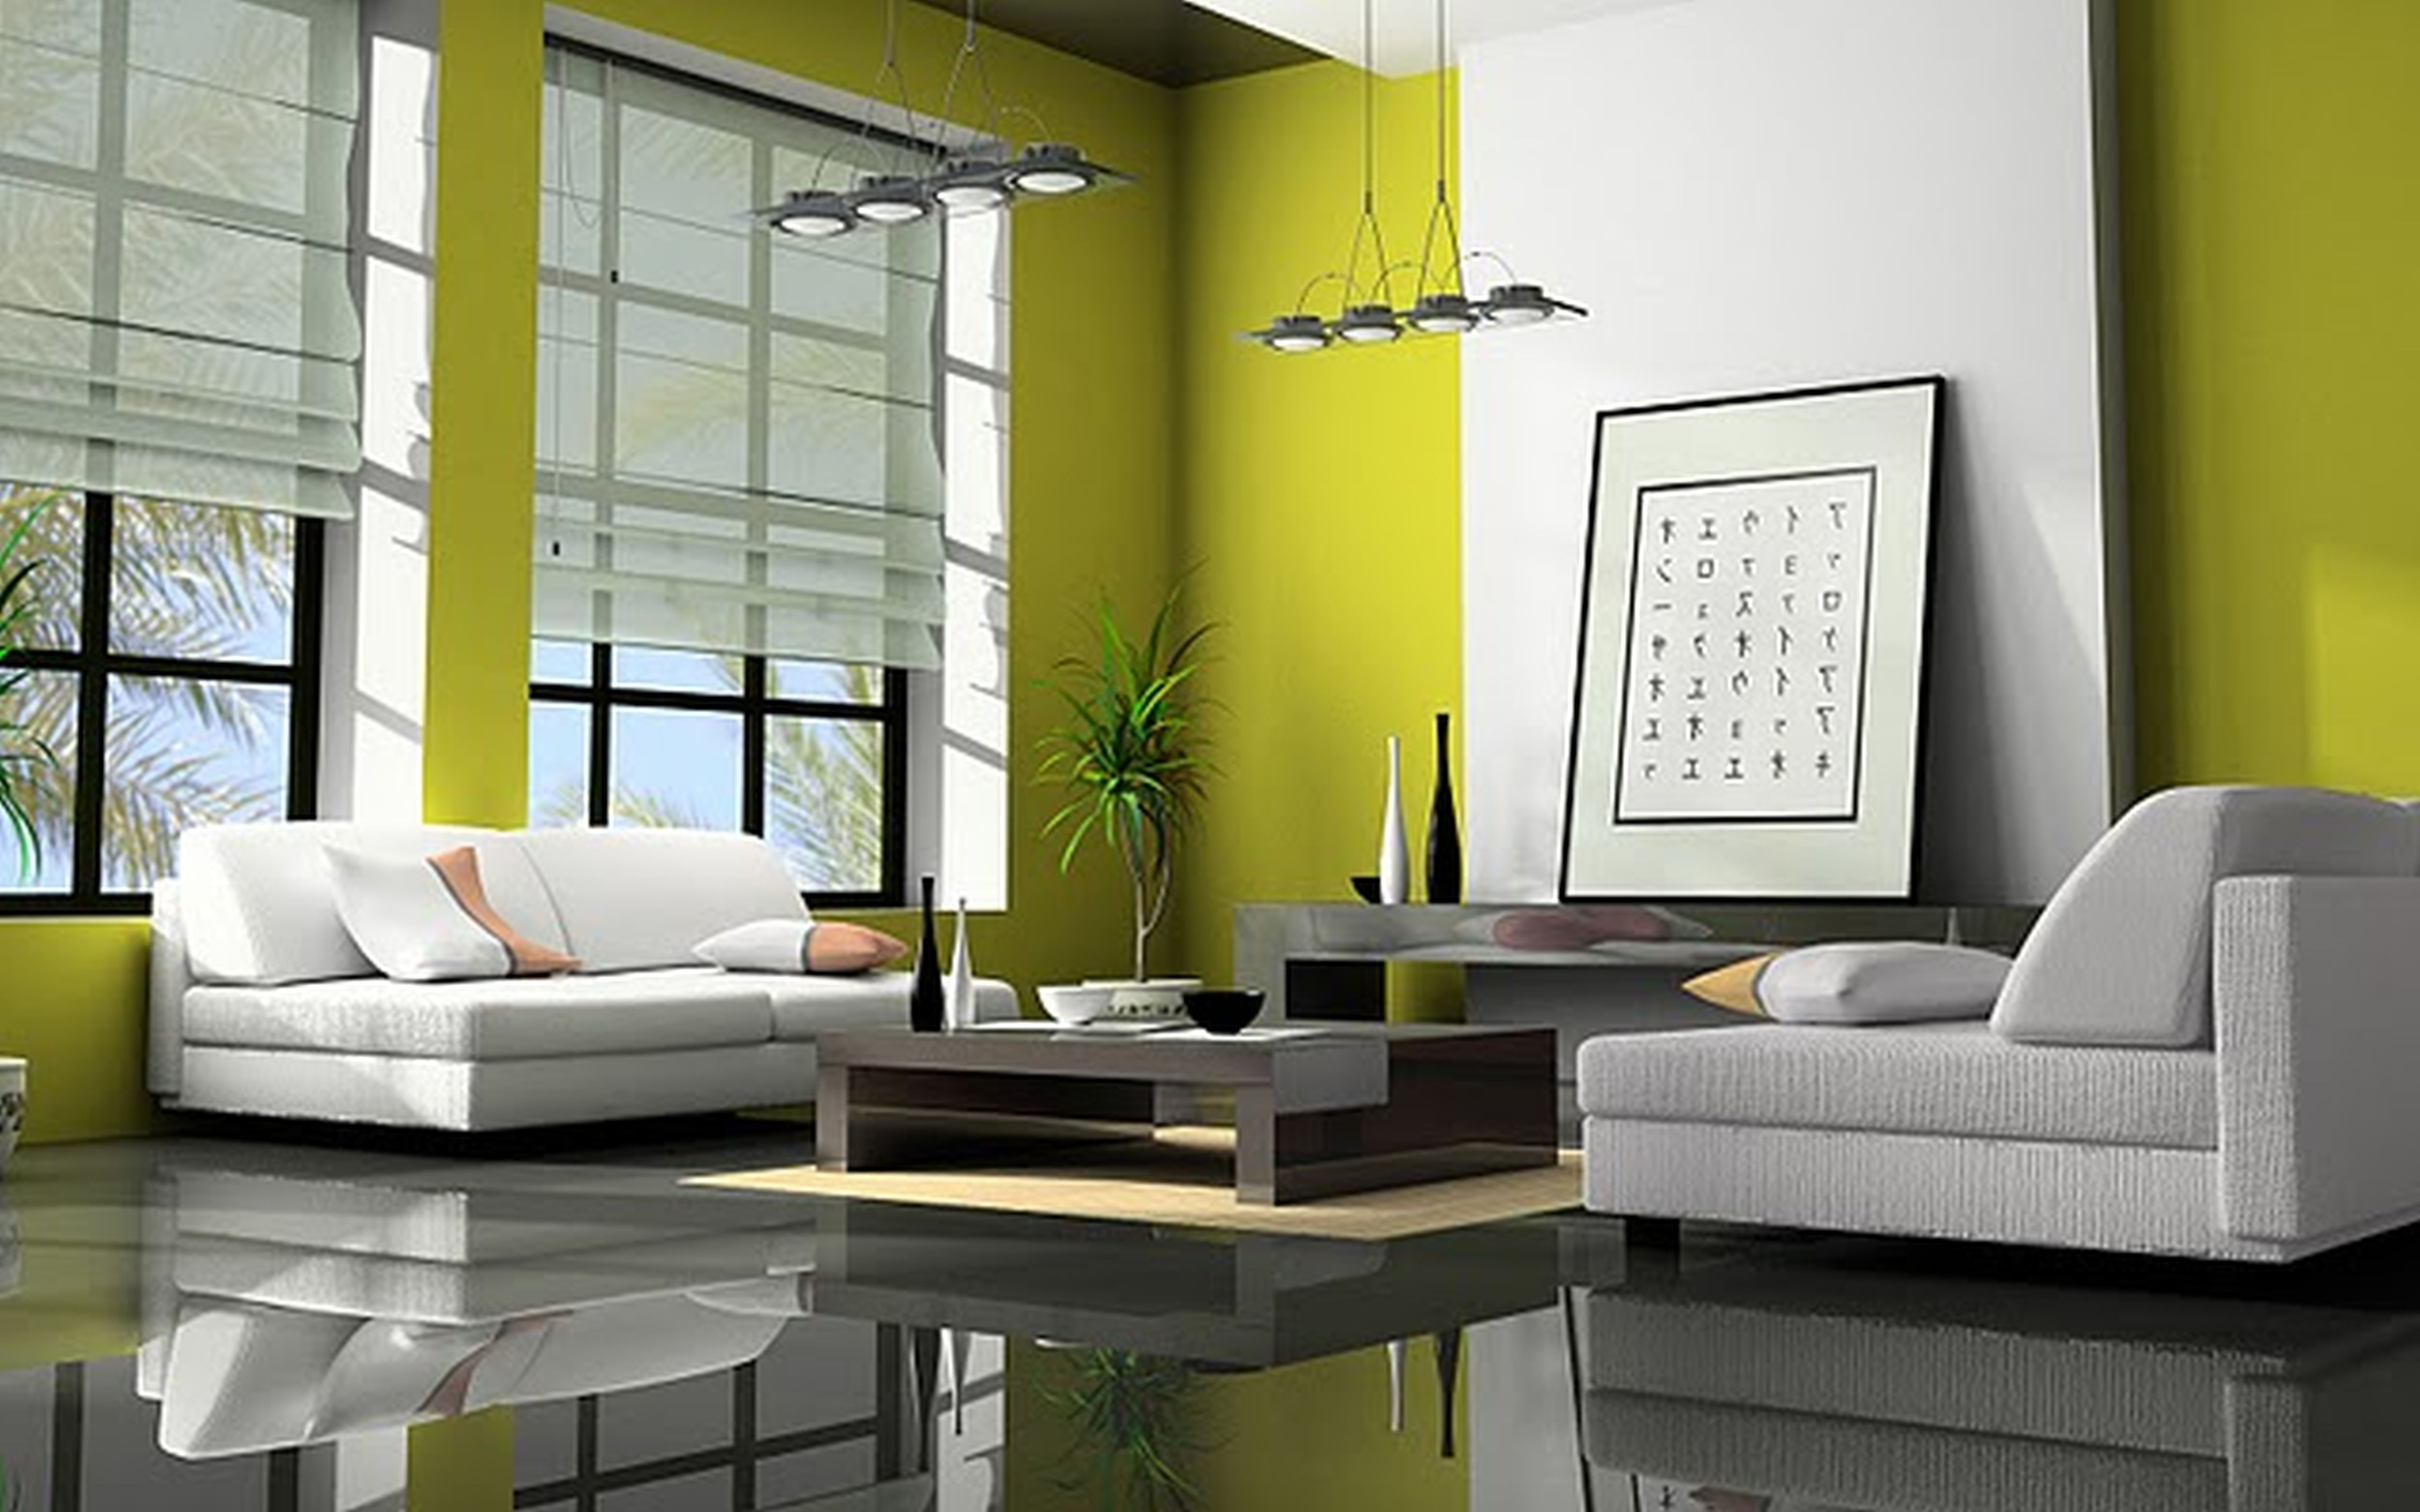 adorable small house design ideas character engaging tiny on designers most used wall color id=70698